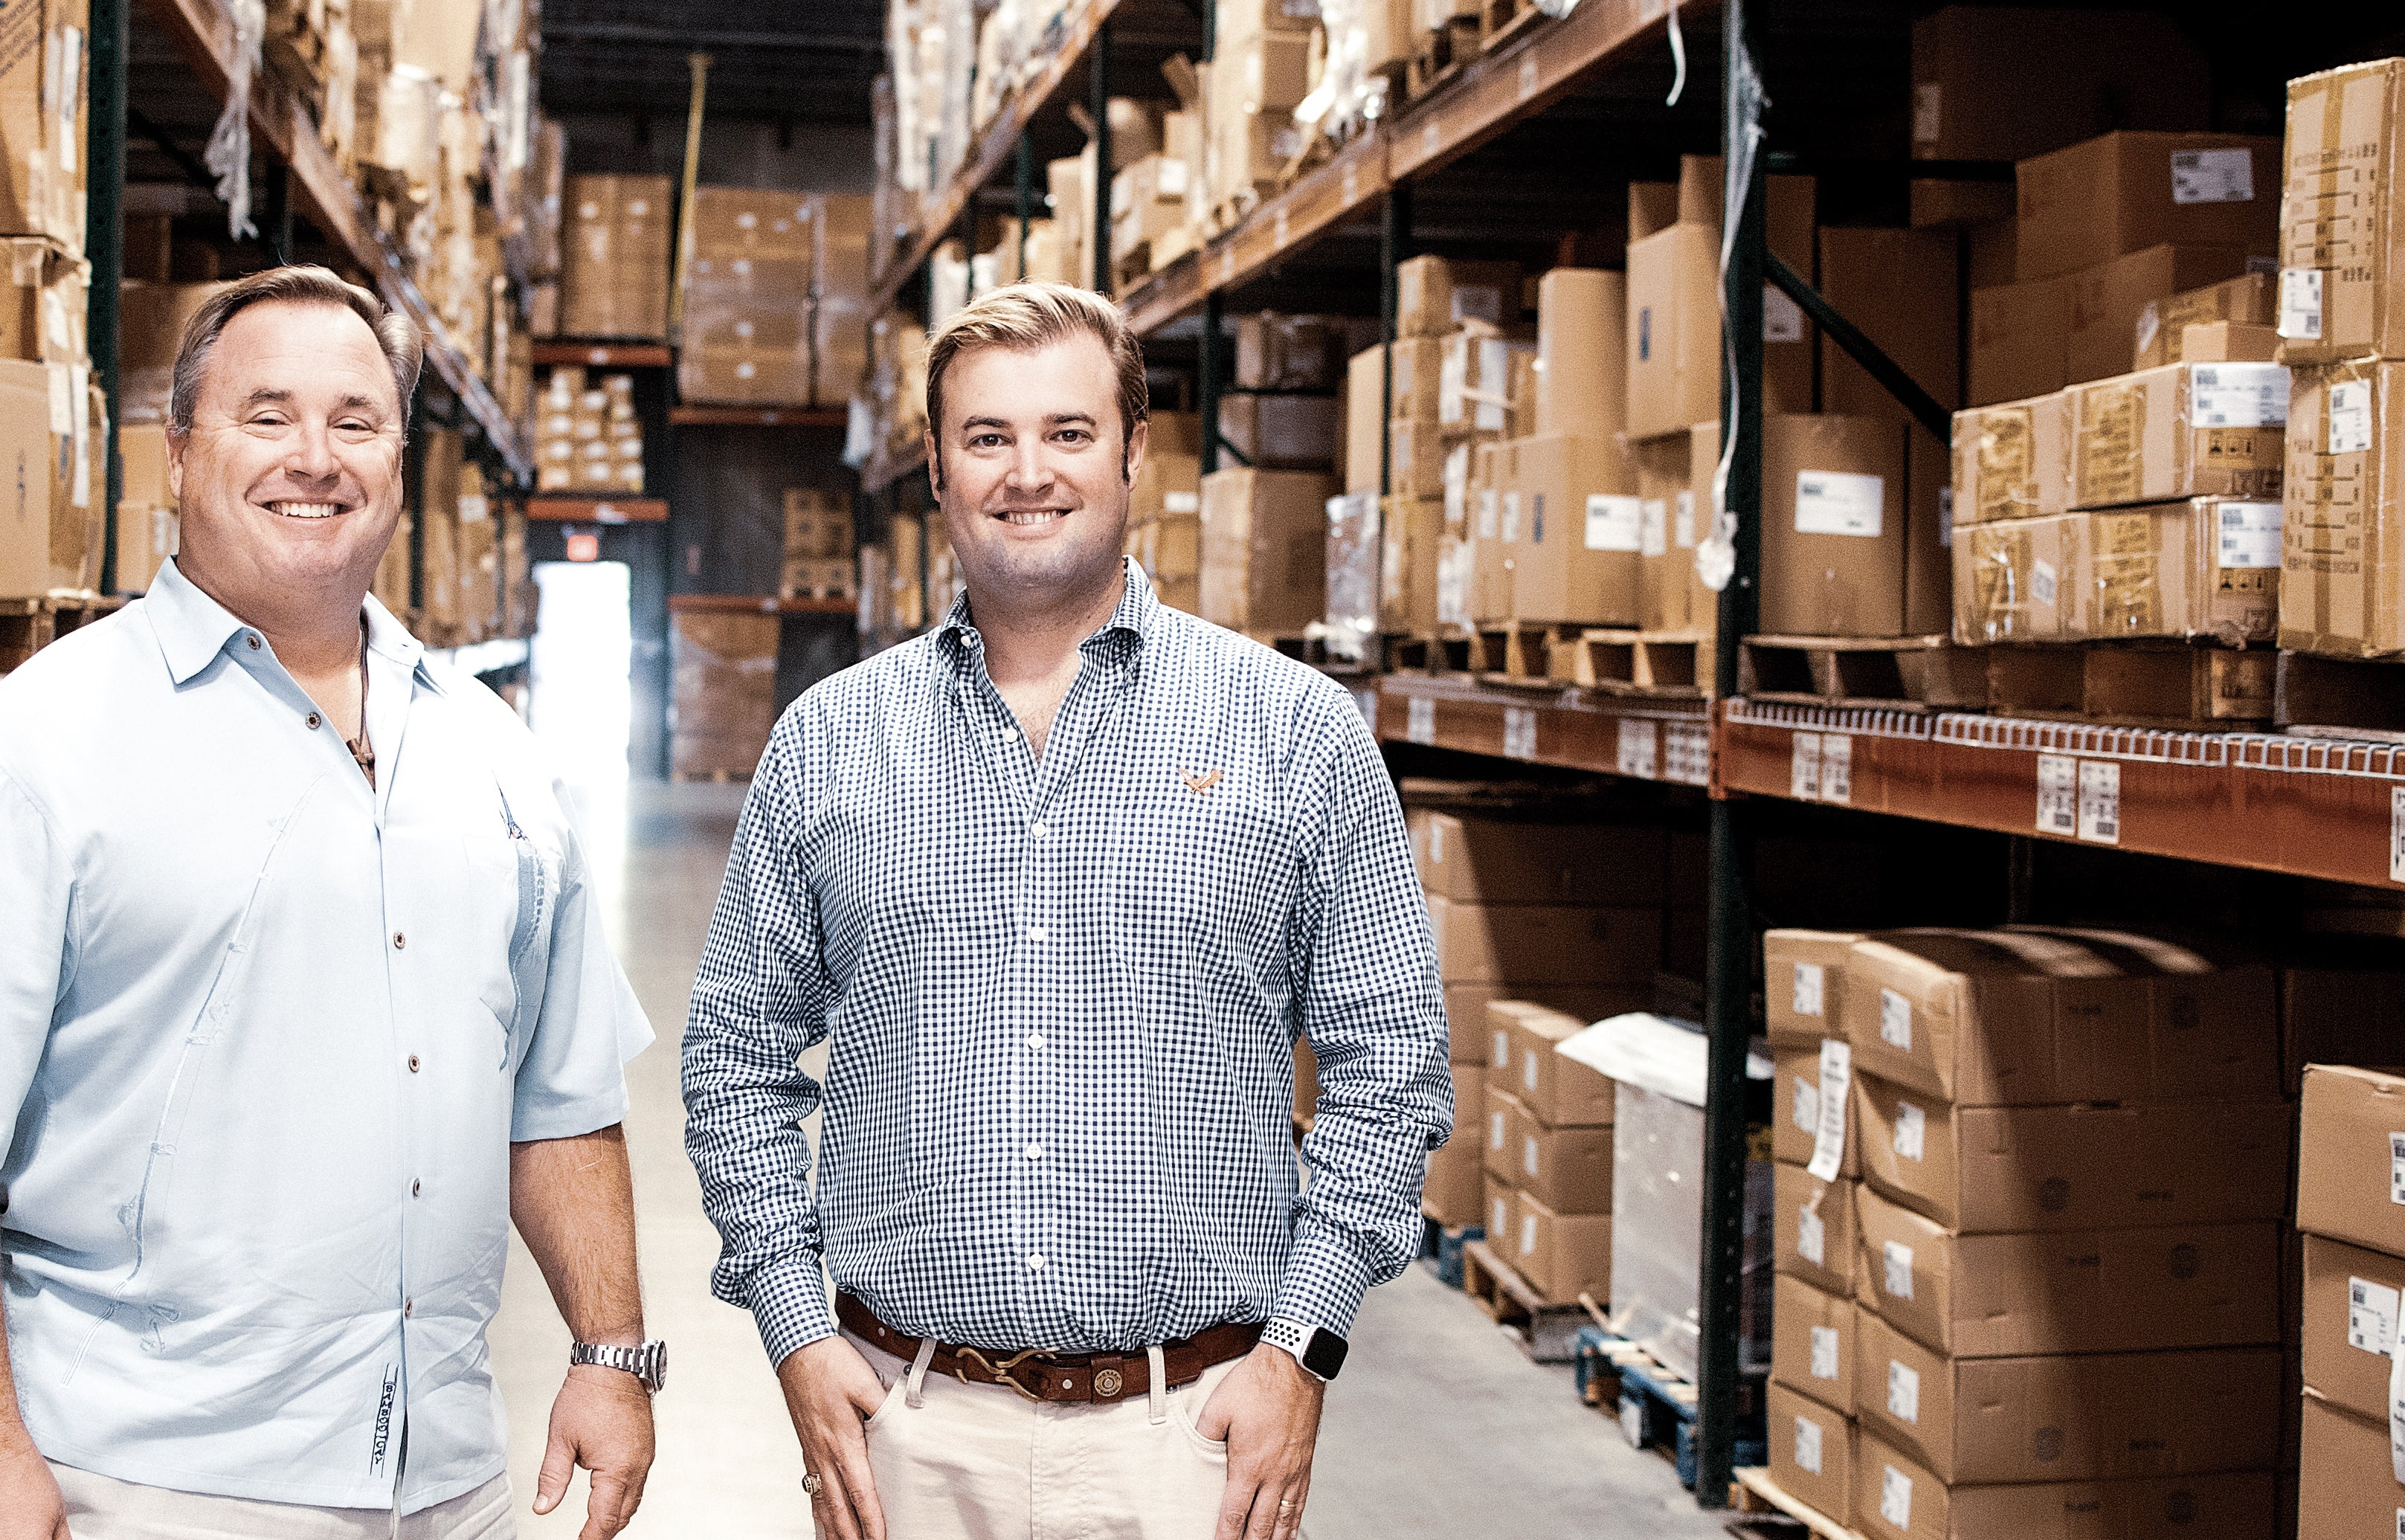 About T-H Marine Supplies - A Family Company - Jeff Huntley Sr. and Jeffery Huntley Jr.